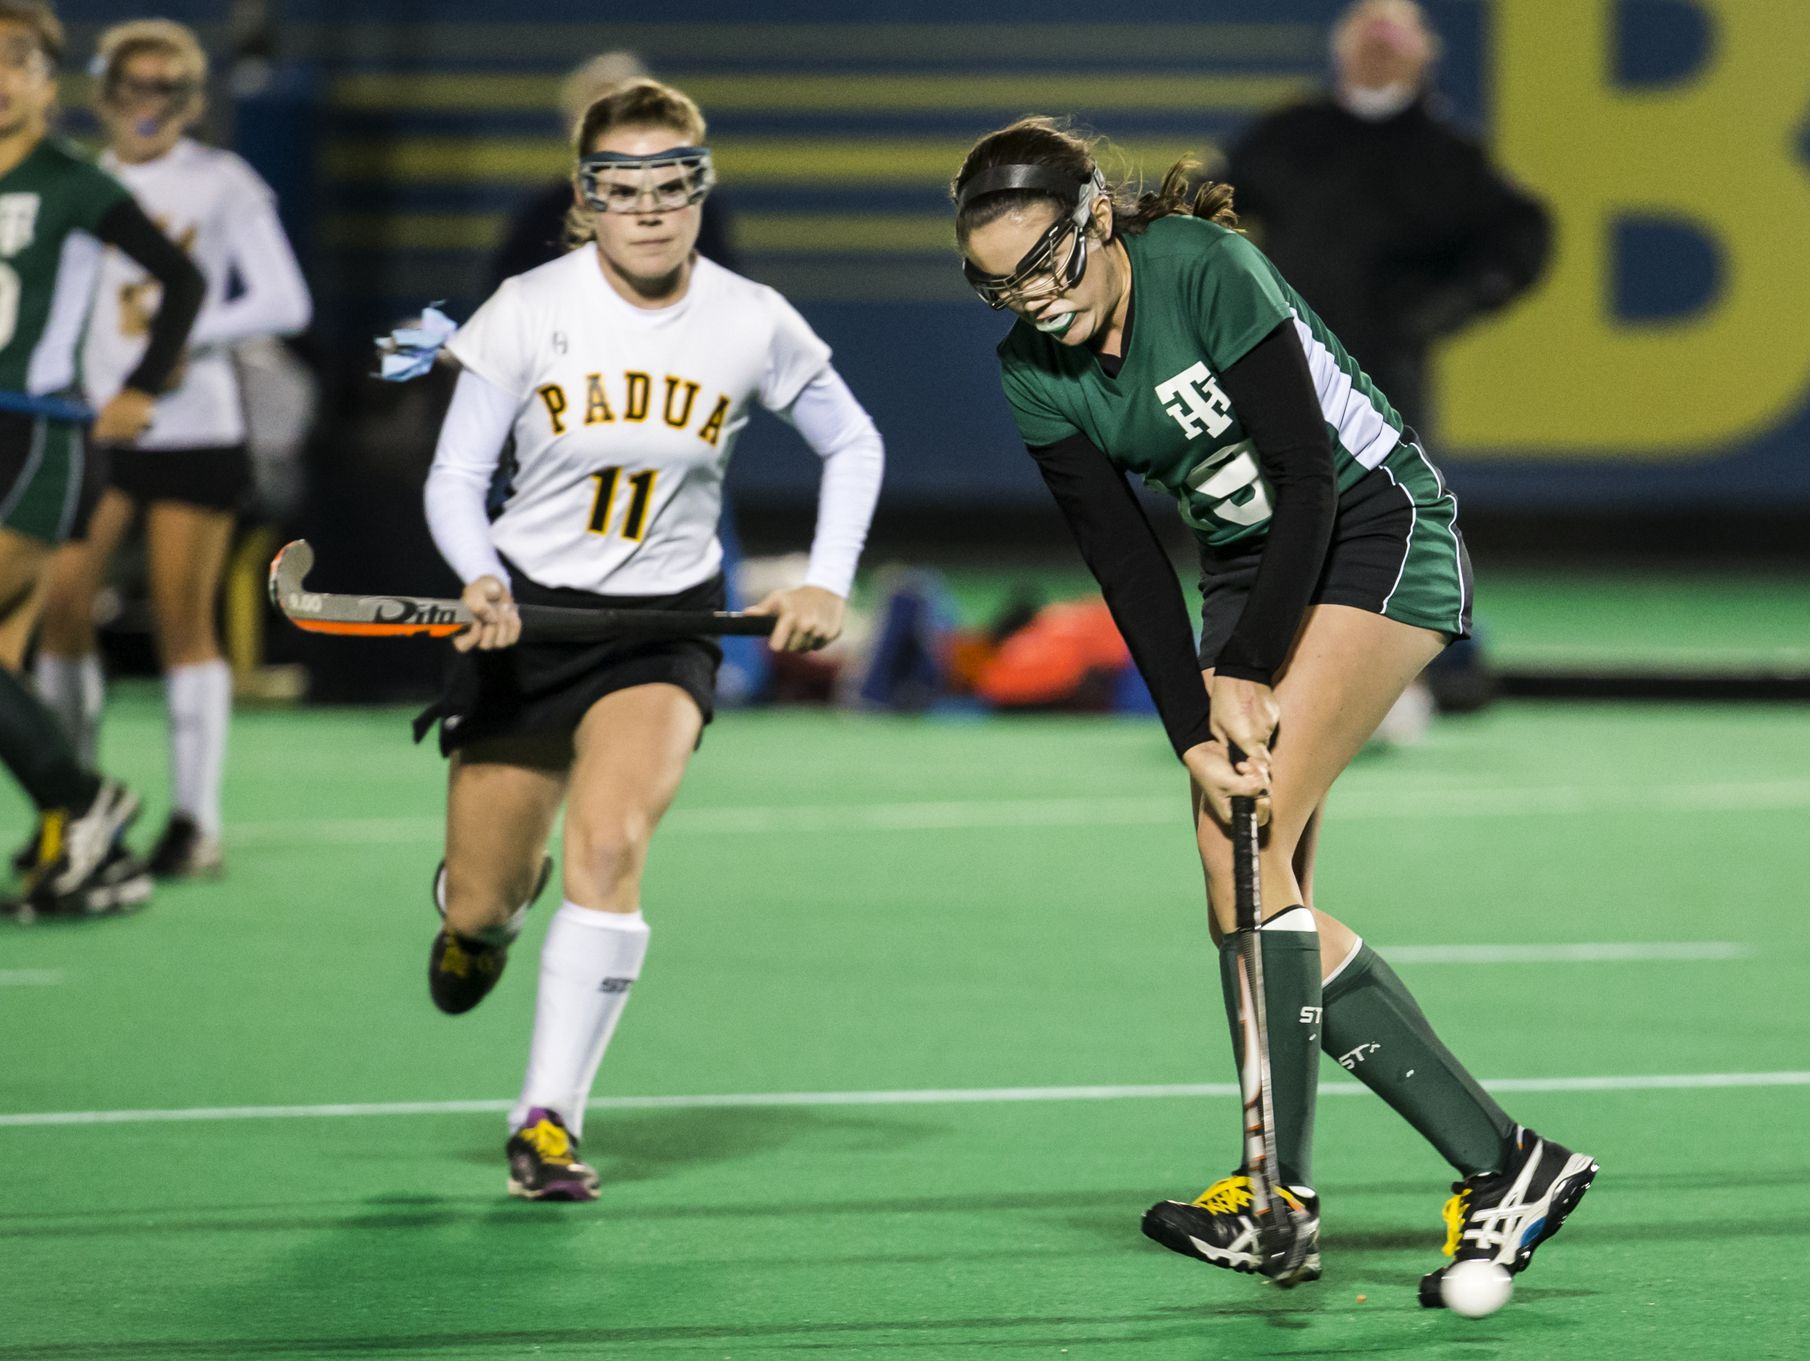 Tower Hill's Natalie Hobbs (right) puts a shot on goal in the second half of Tower Hill's 4-0 win over Padua in their DIAA state tournament semi-final game at the University of Delaware in Newark on Tuesday night.